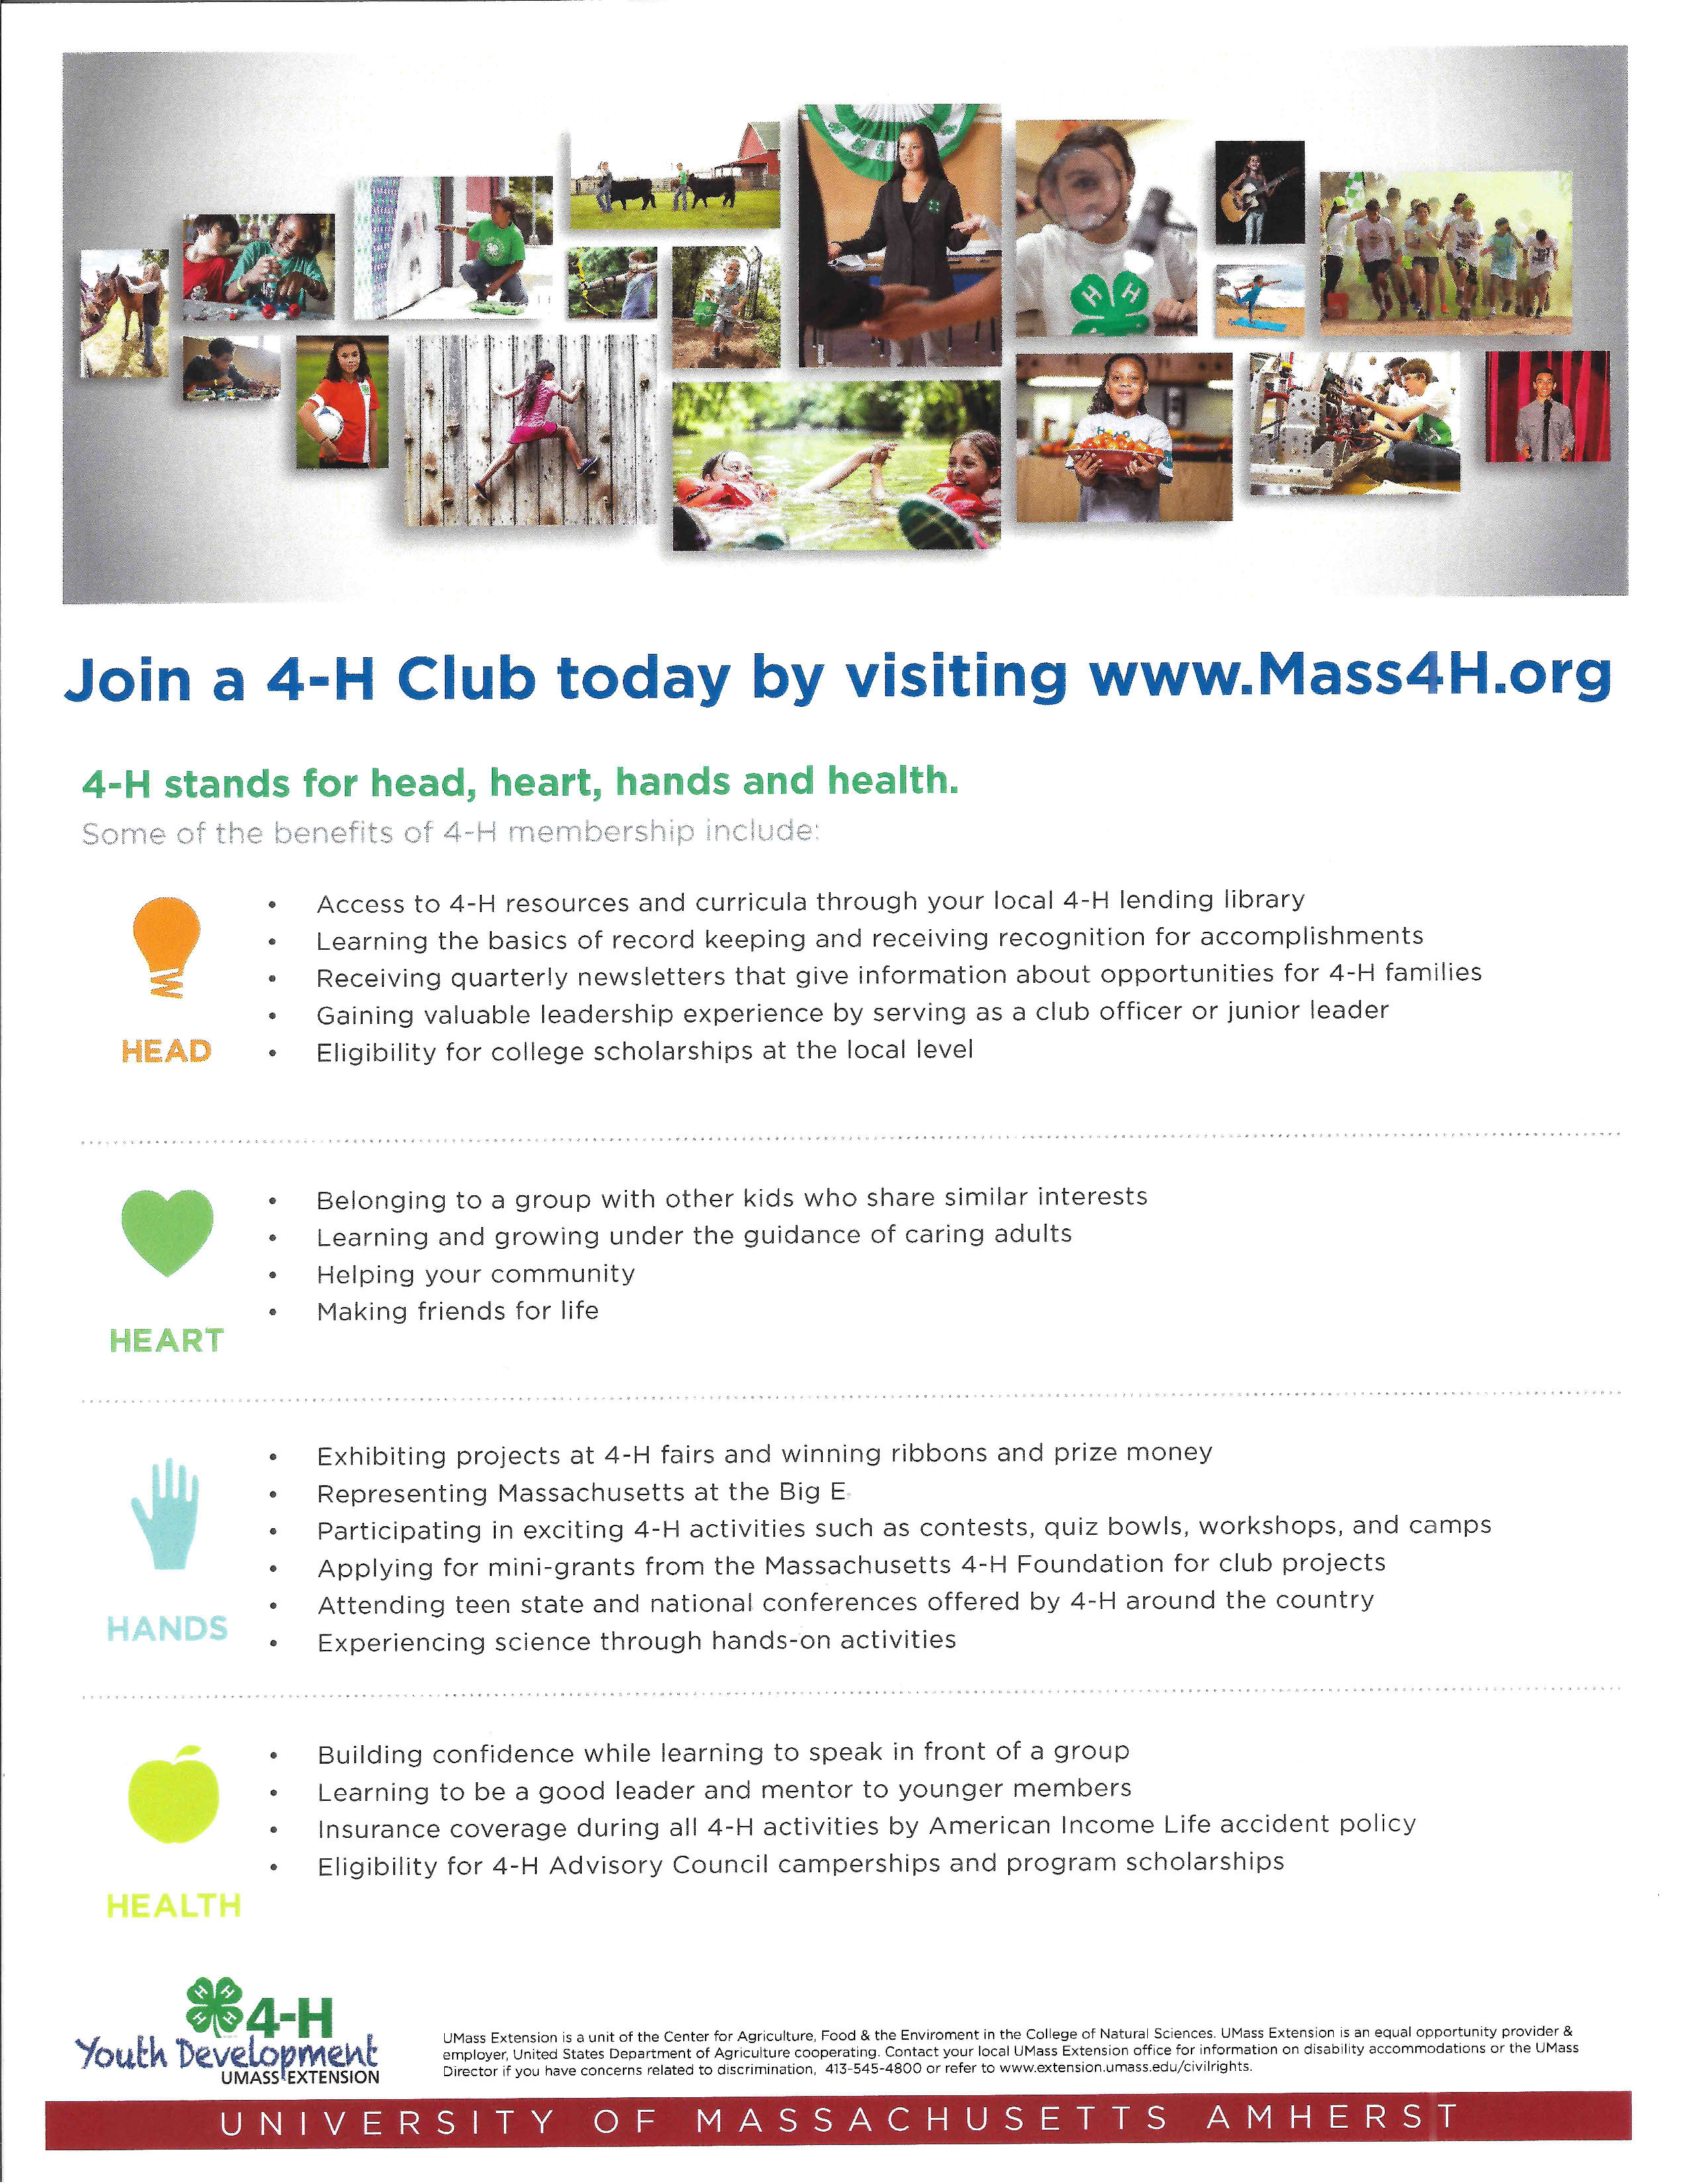 Benefits of joining Mass 4-H